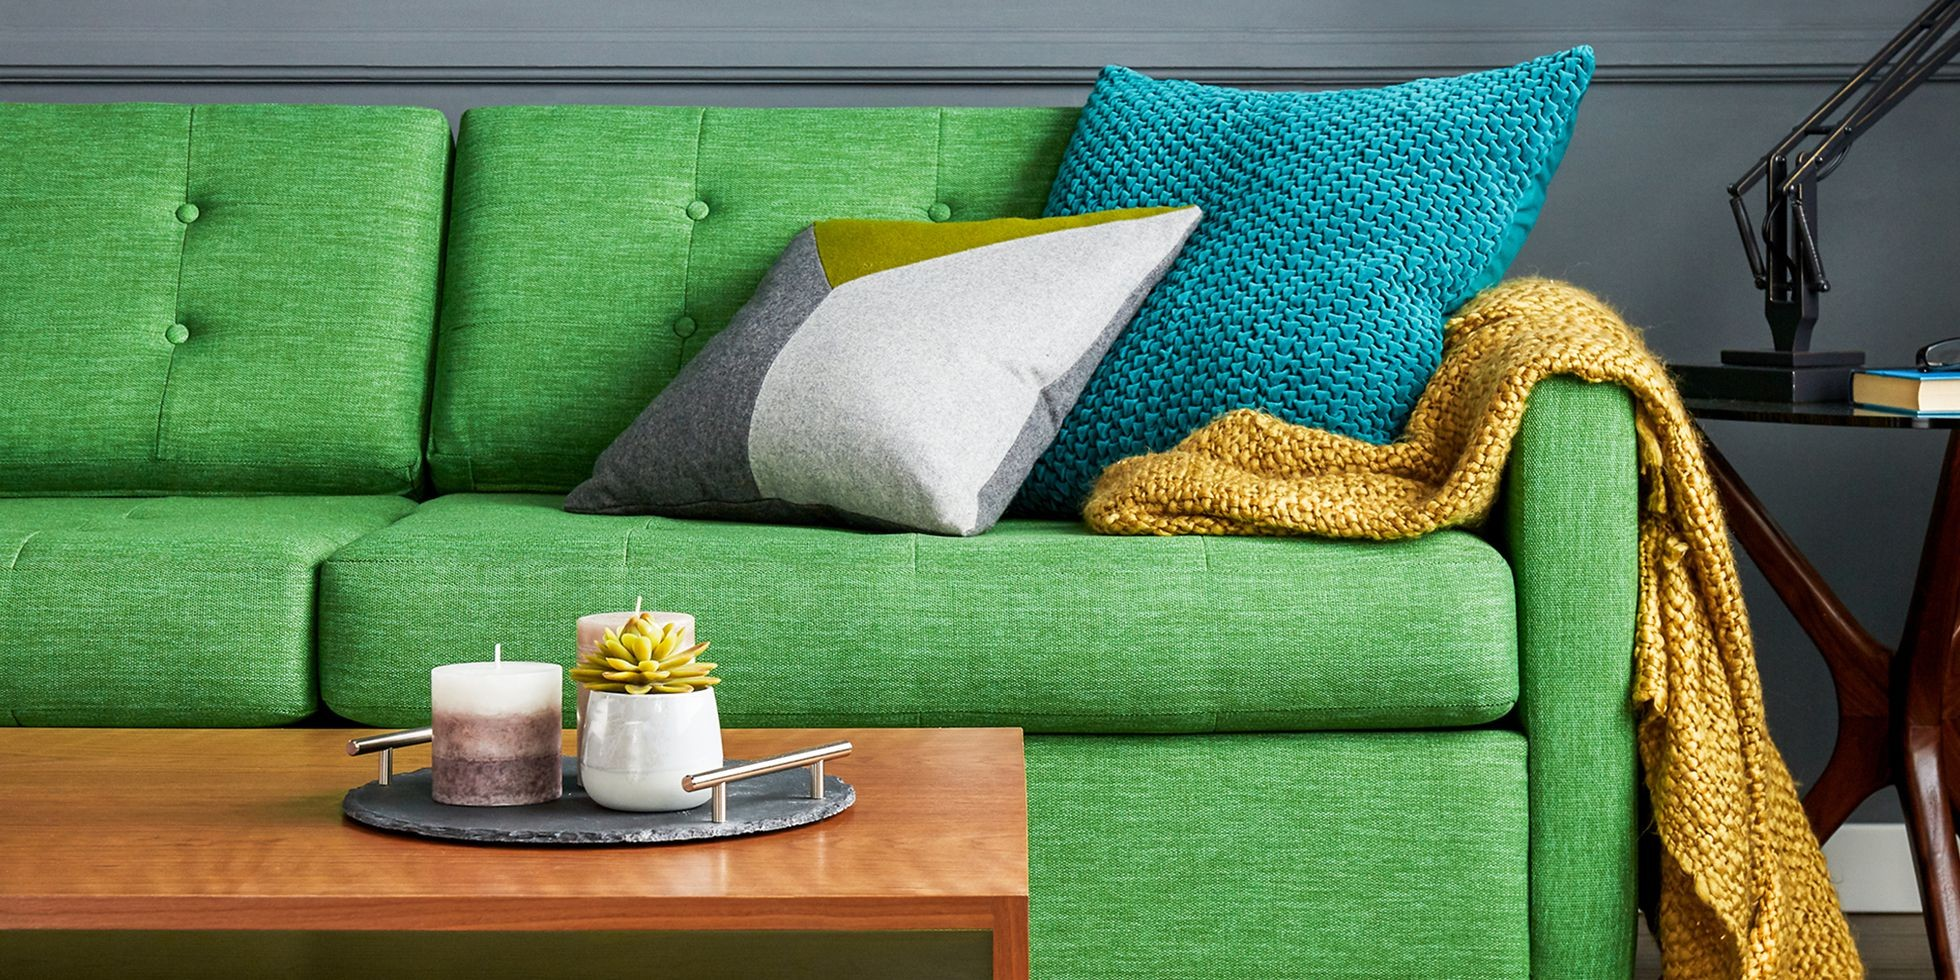 How To Clean Leather Sofa With Household Products